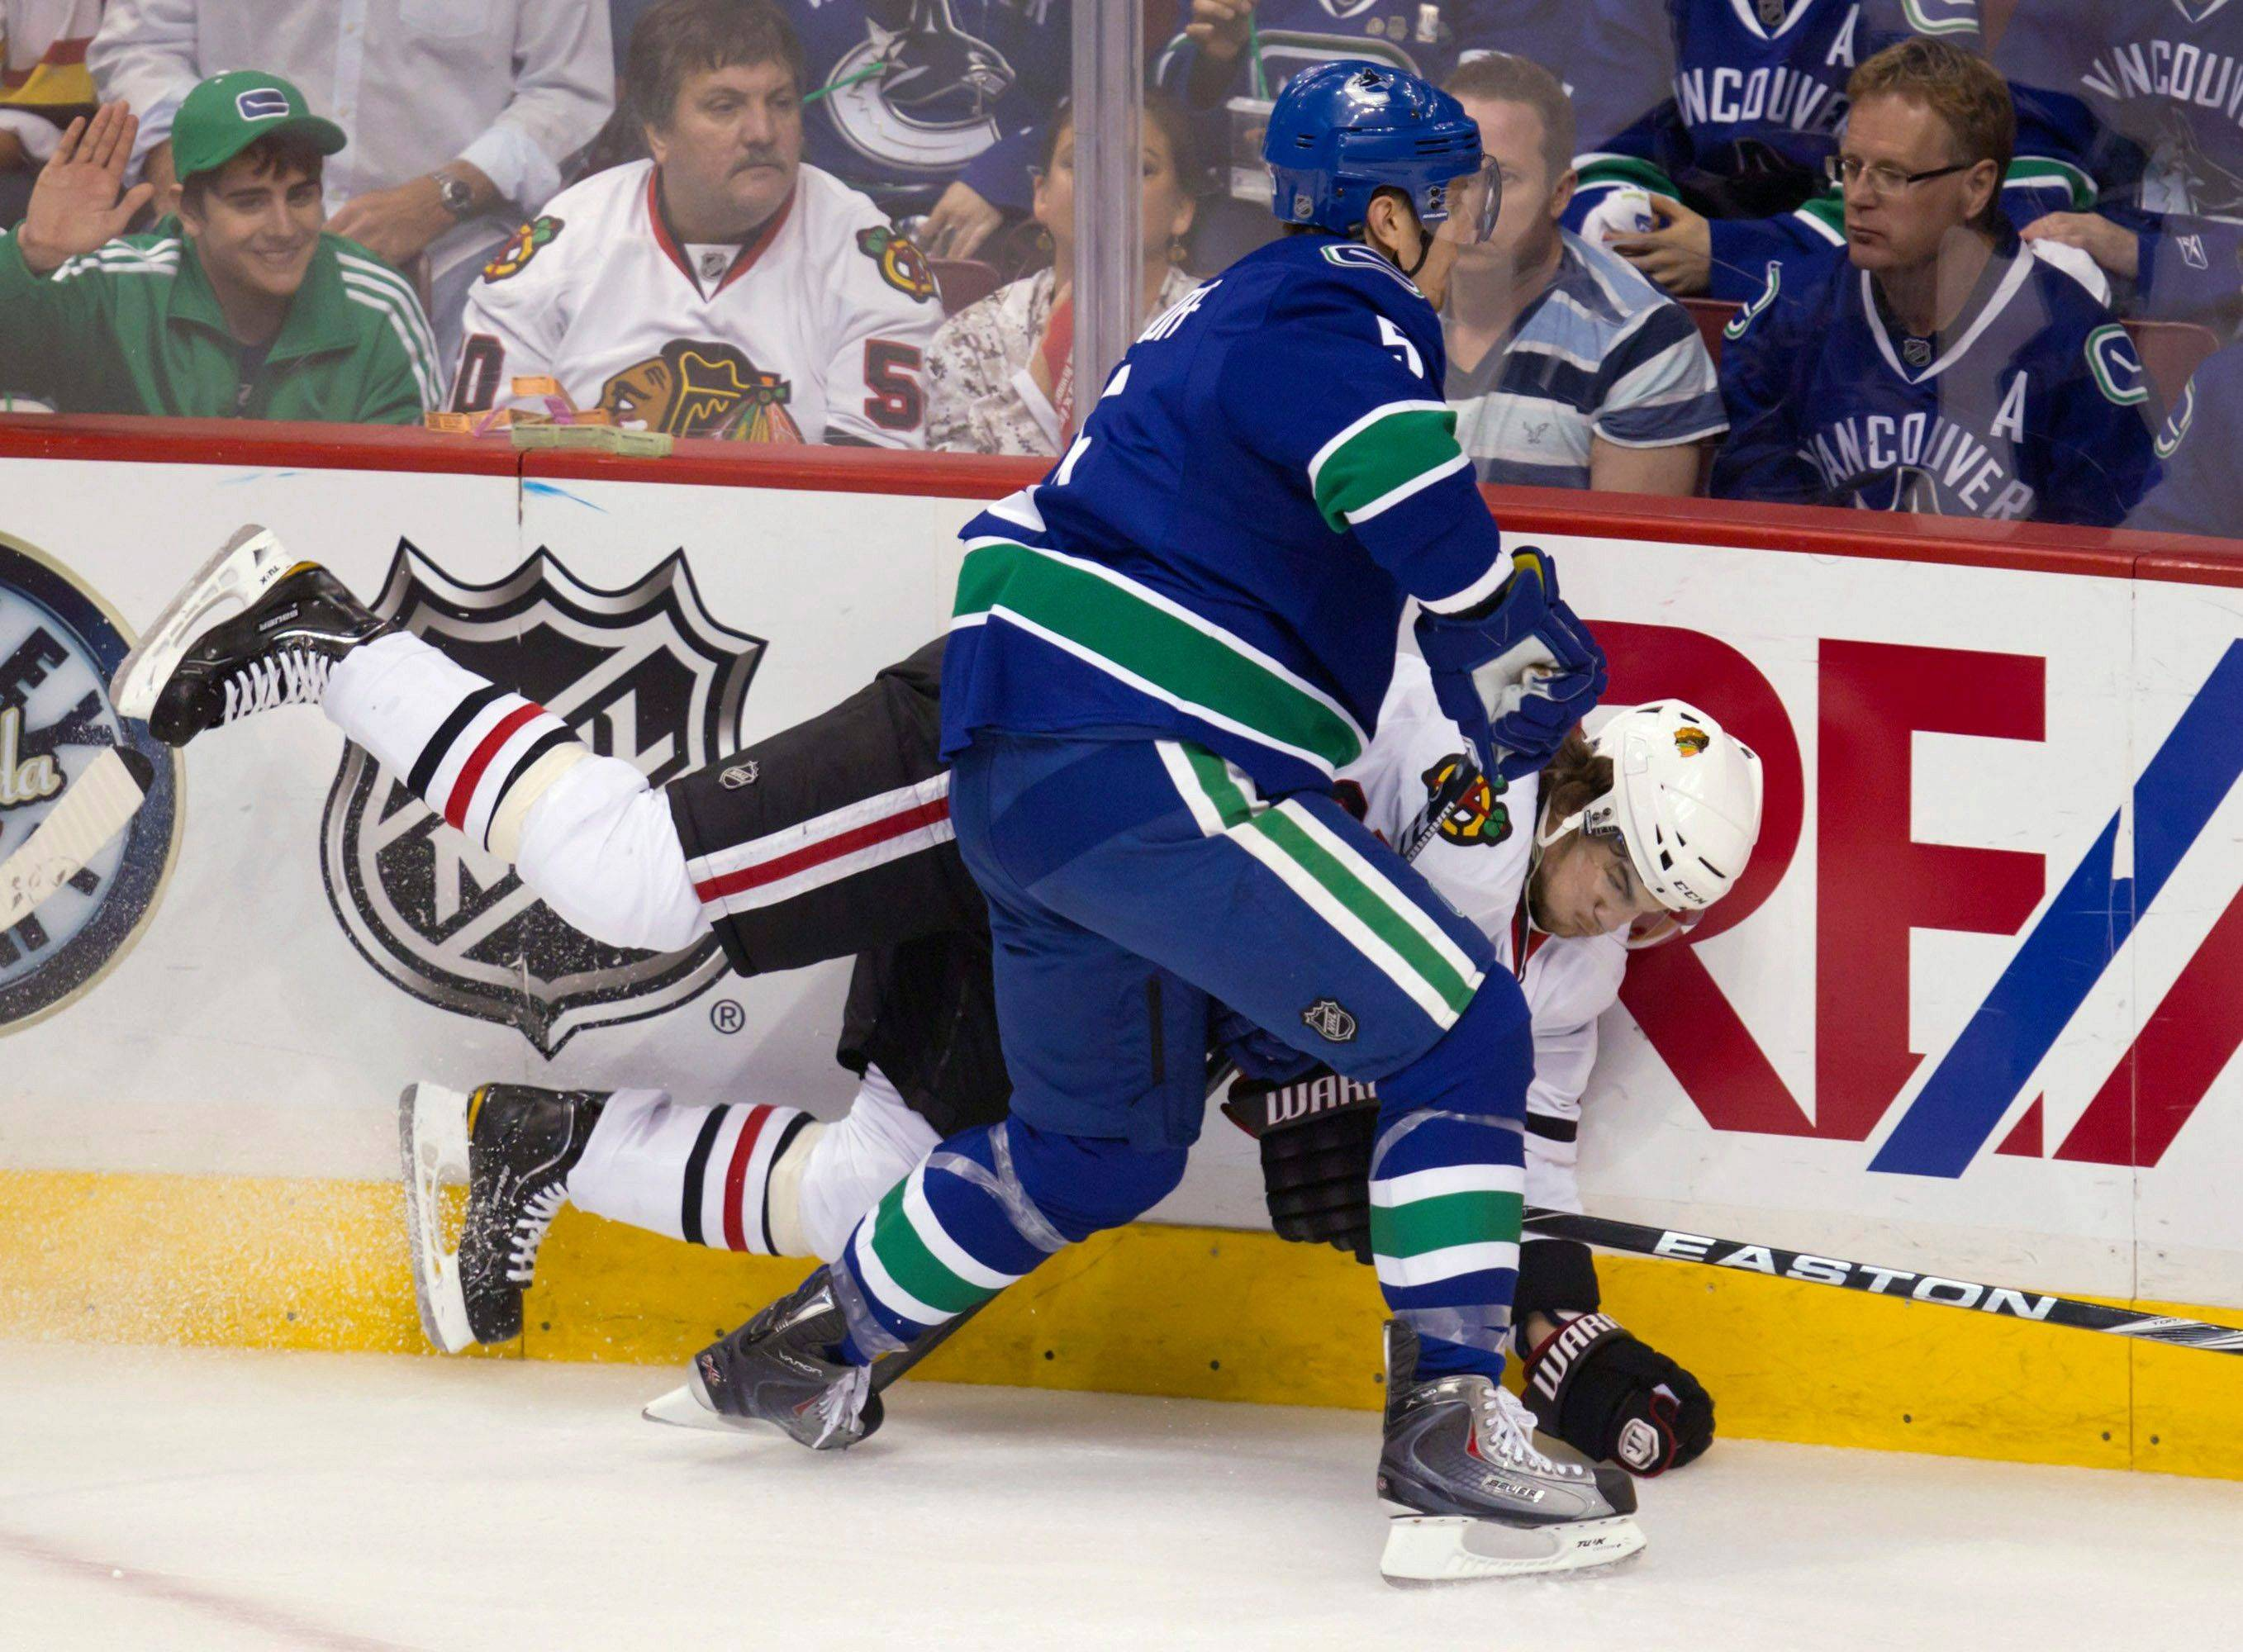 Vancouver Canucks' Christian Ehrhoff checks Chicago's Michael Frolik during Game 7.